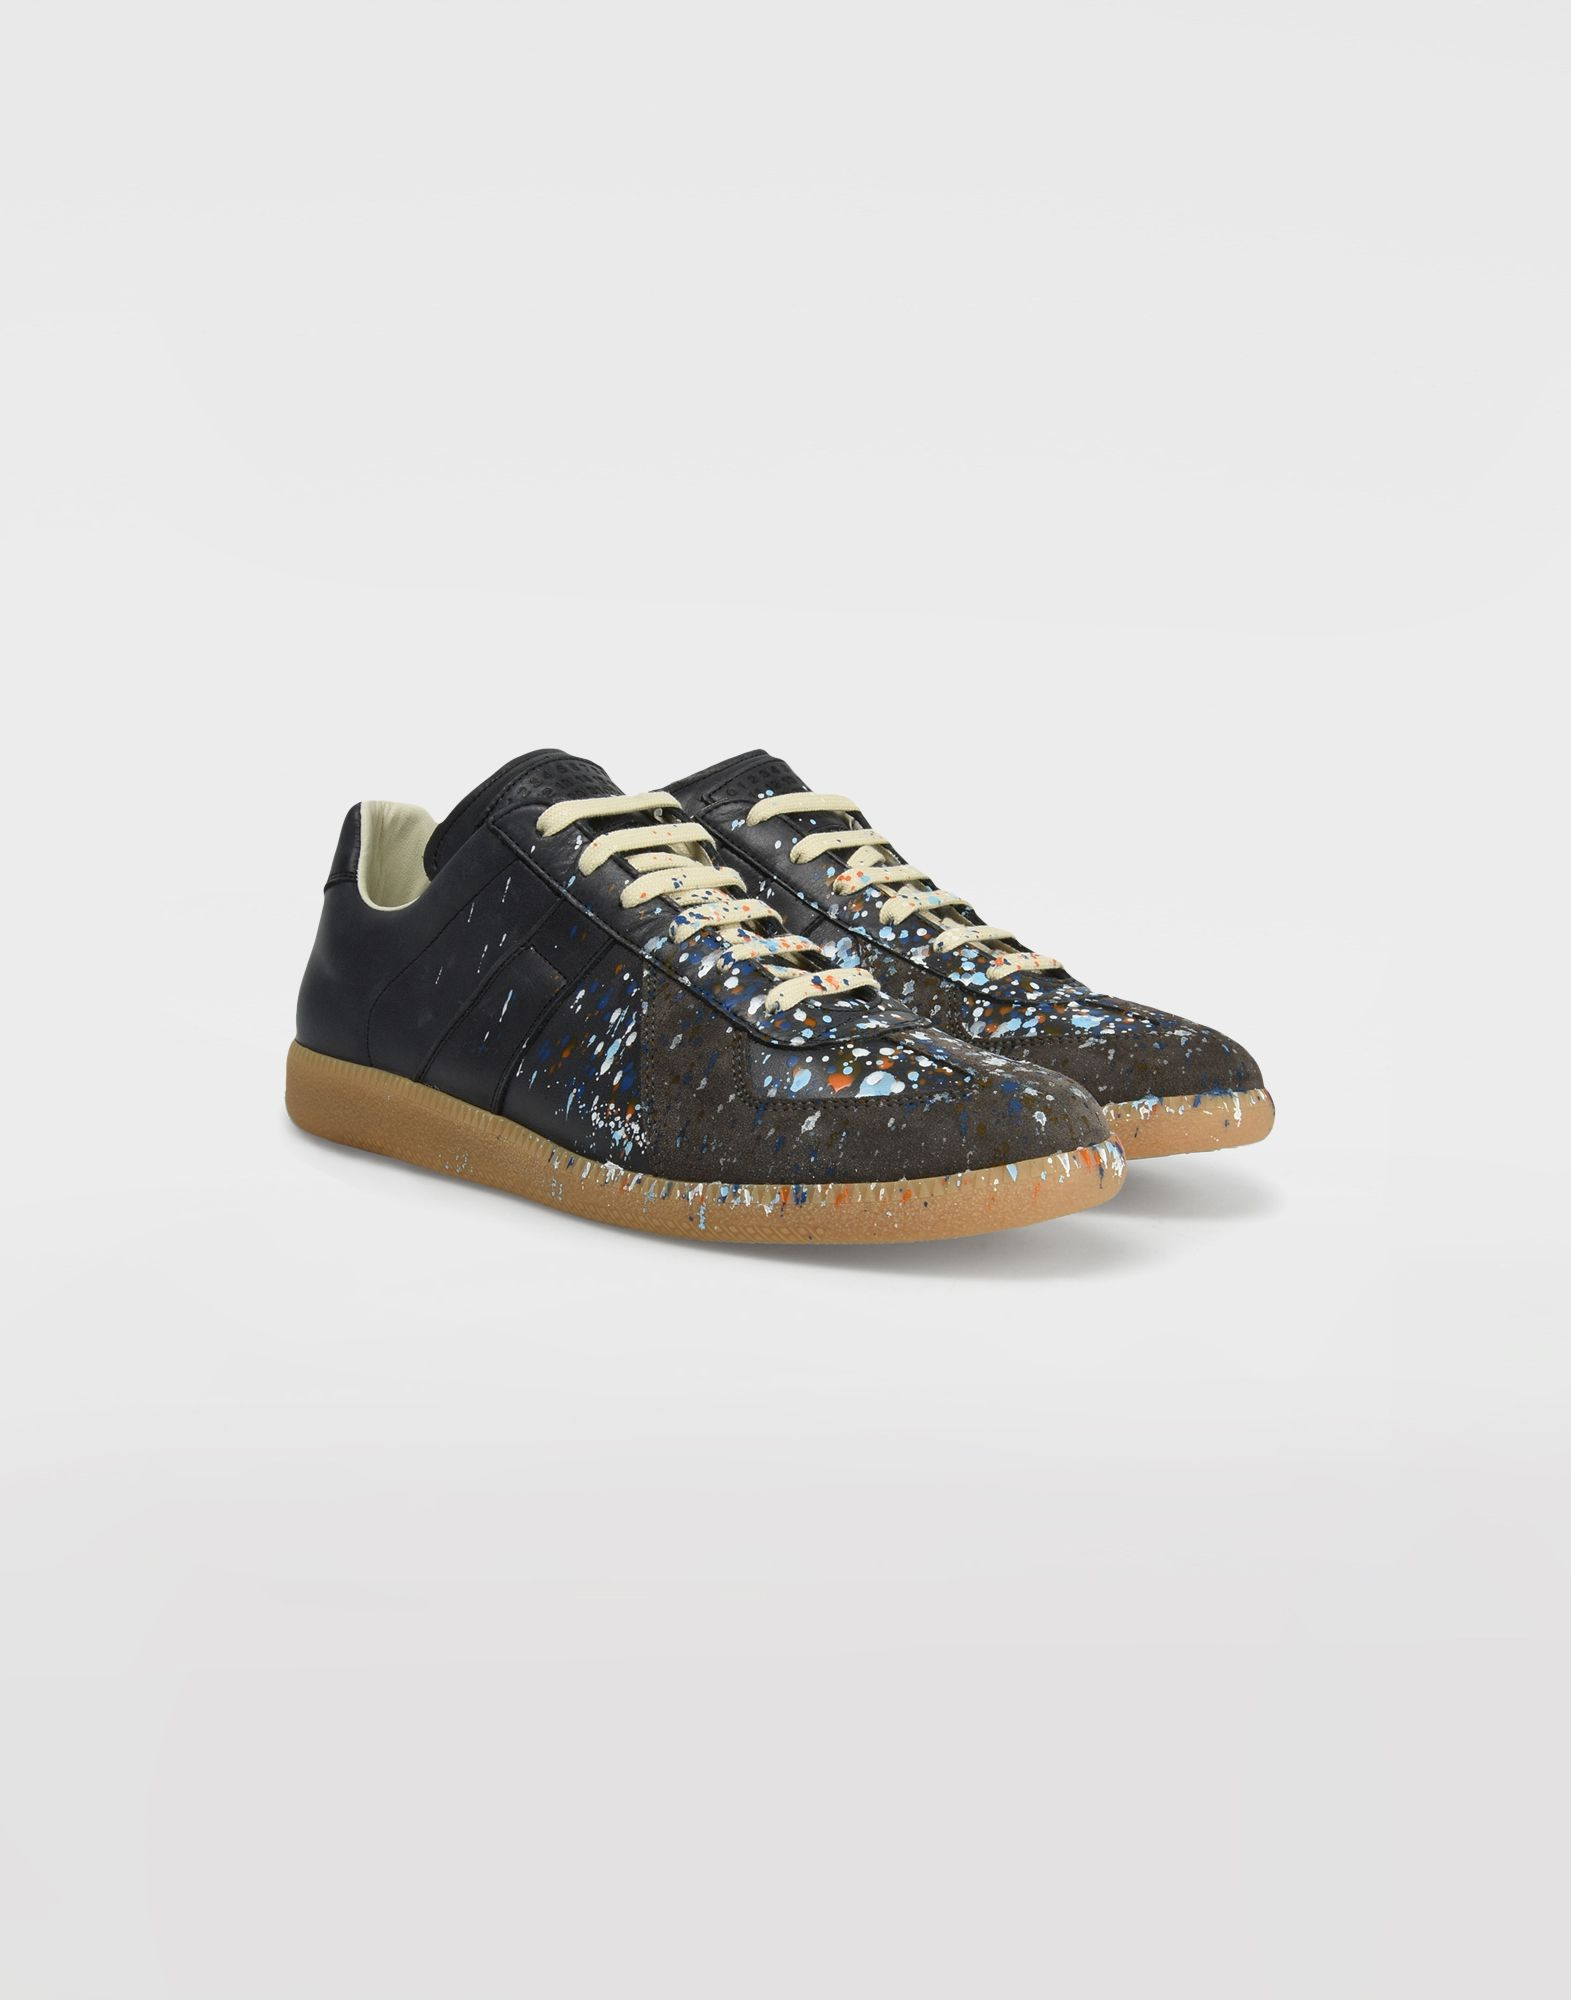 MAISON MARGIELA Low top paint drop Replica sneakers Sneakers Man d